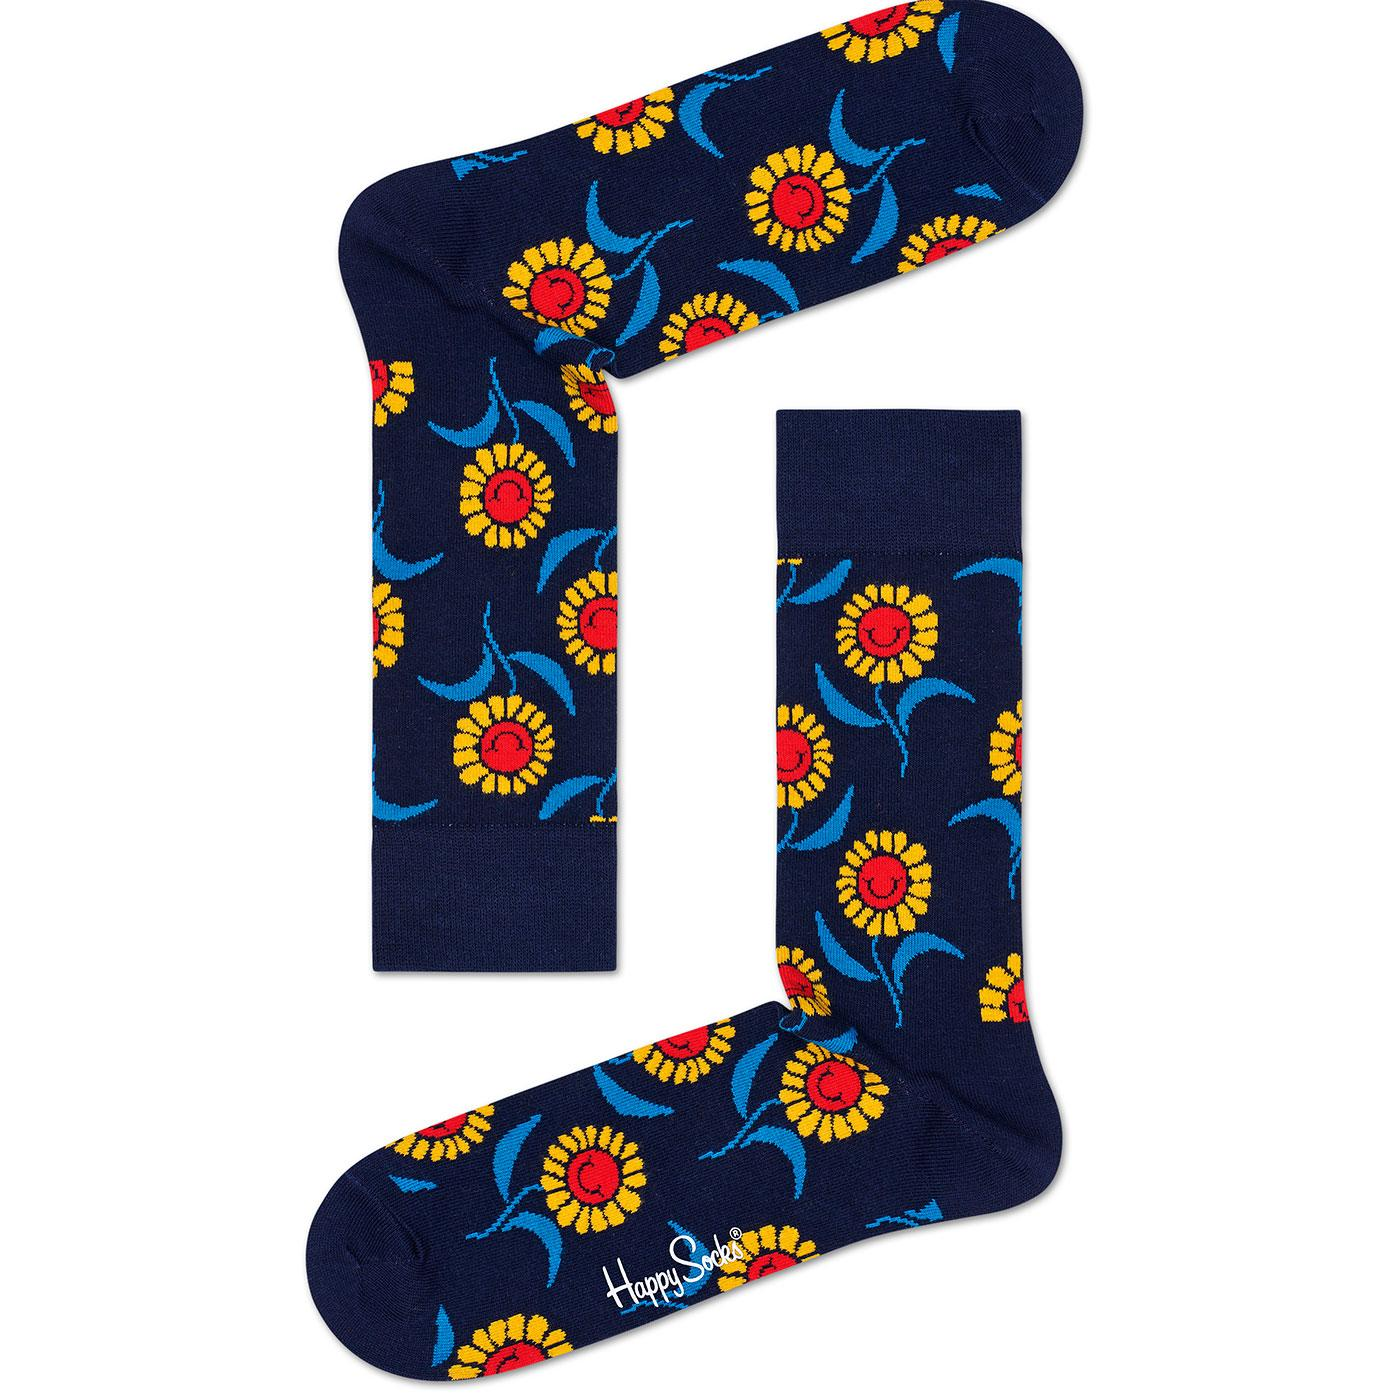 + HAPPY SOCKS Retro 60s Smiling Sunflower Socks